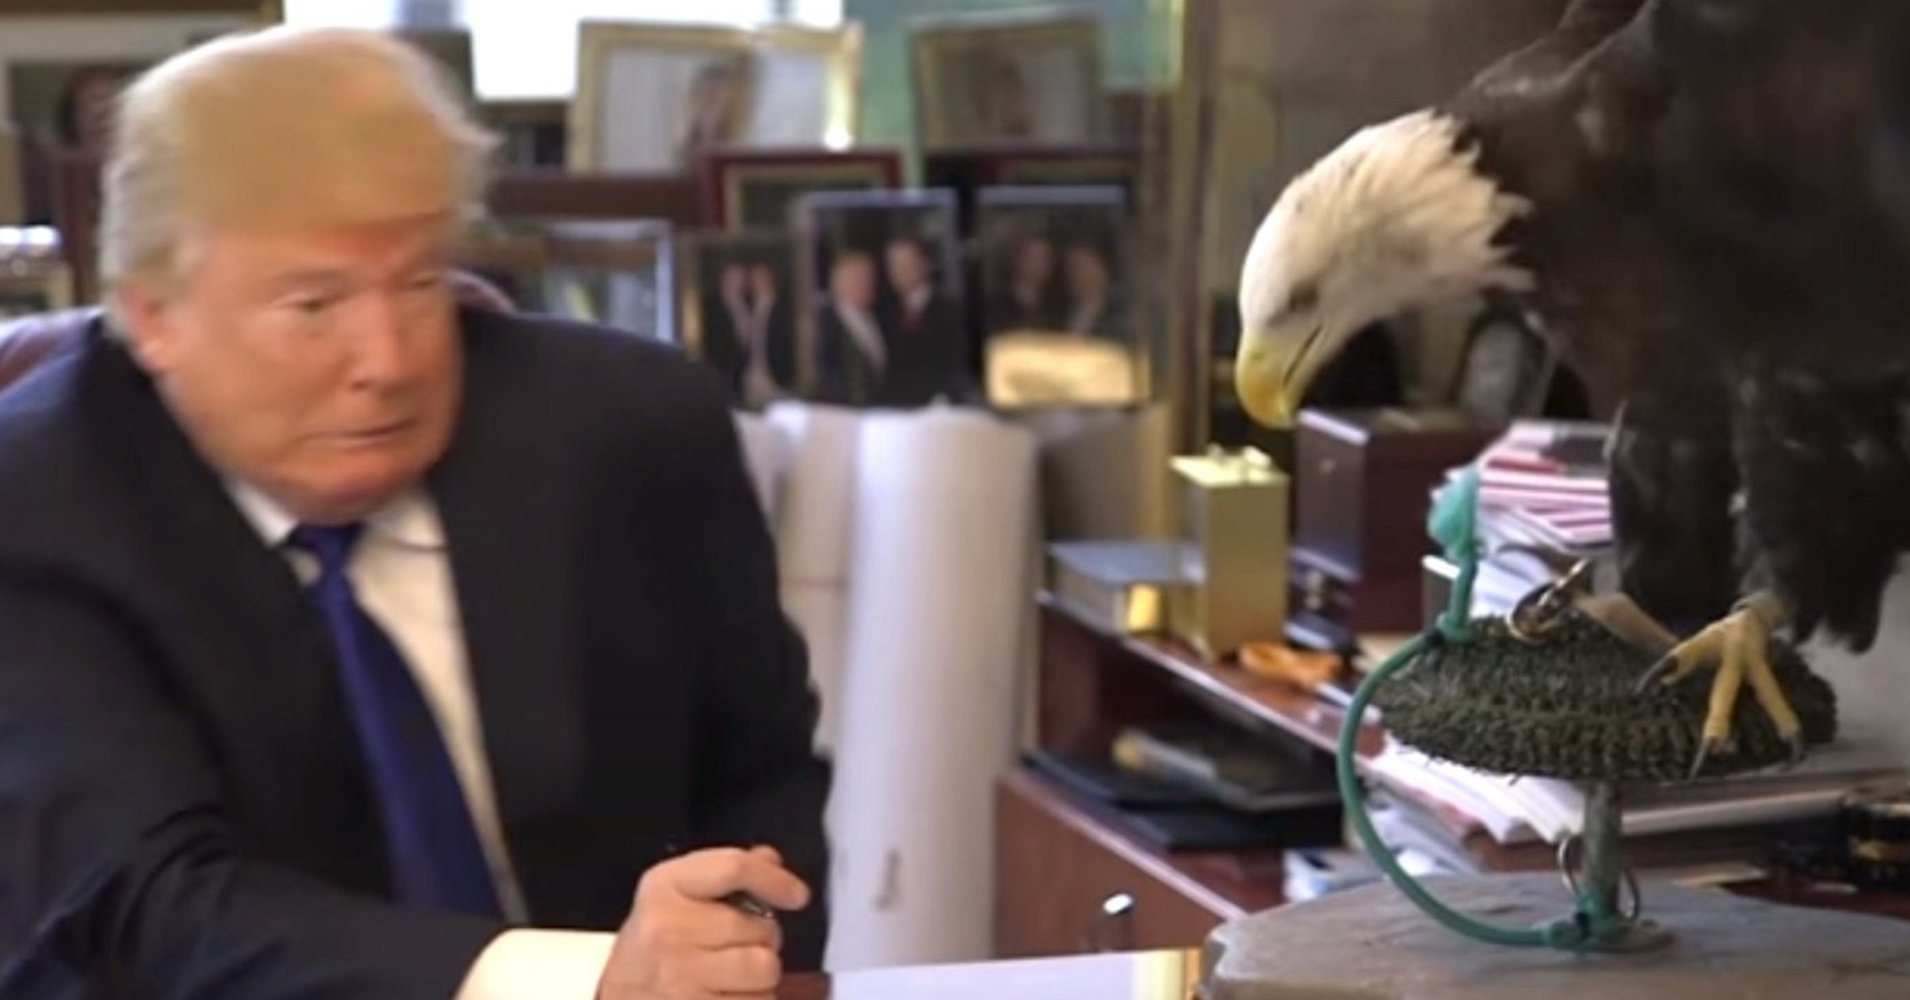 donald trump scared of eagle